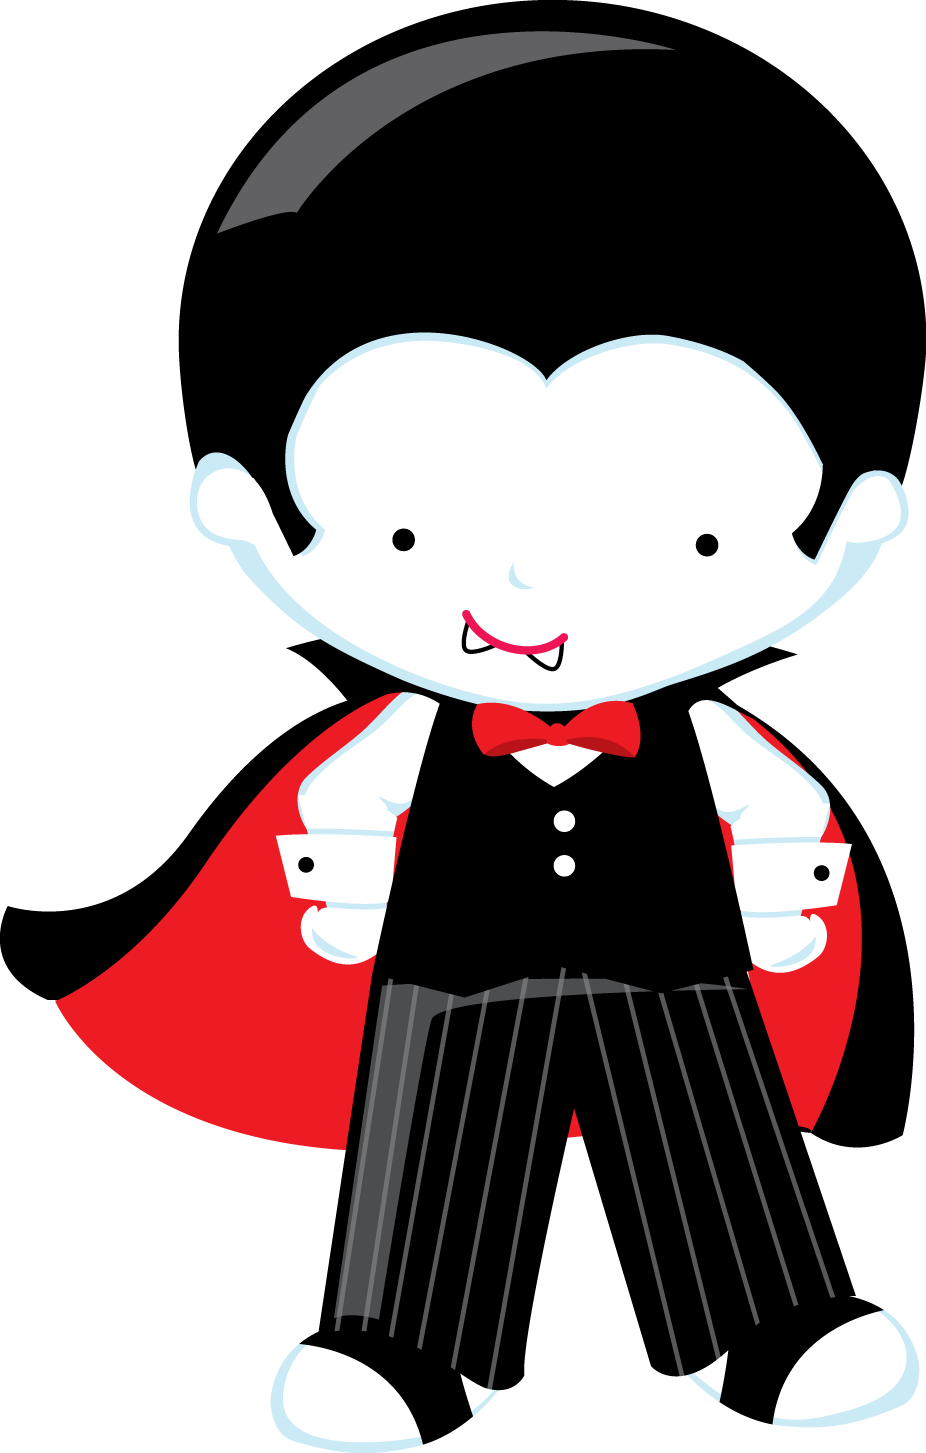 Zwd witch dracula png. Hotel clipart clip art